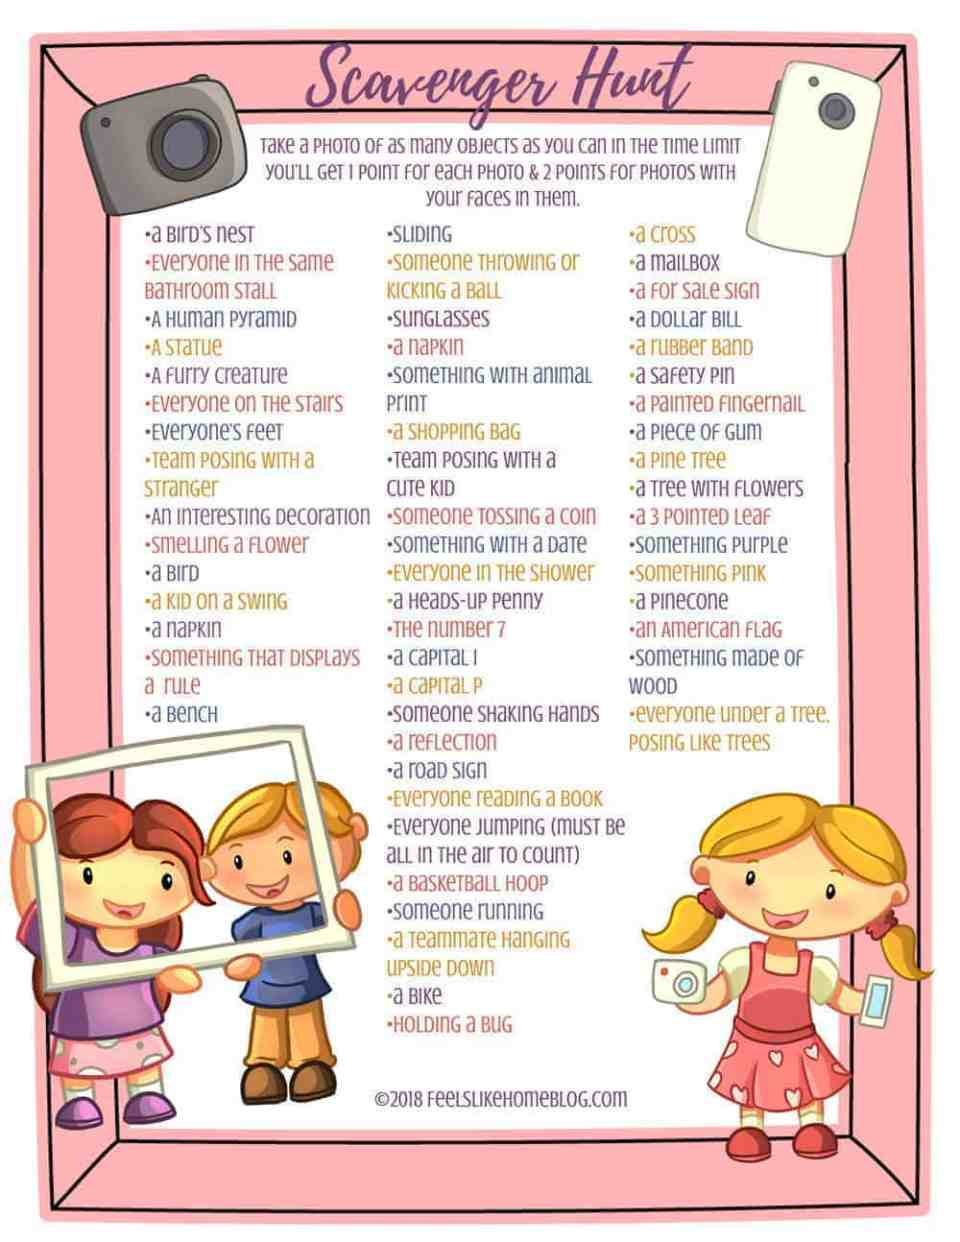 Photo Scavenger hunt for Kids, Tweens, Teens, & Adults - This awesome list includes both indoor and outdoor ideas. Perfect for a birthday party, group, or team event. Could be done at school, home, Girl Scouts, or homeschool. Great family activity for spring, summer, or fall.